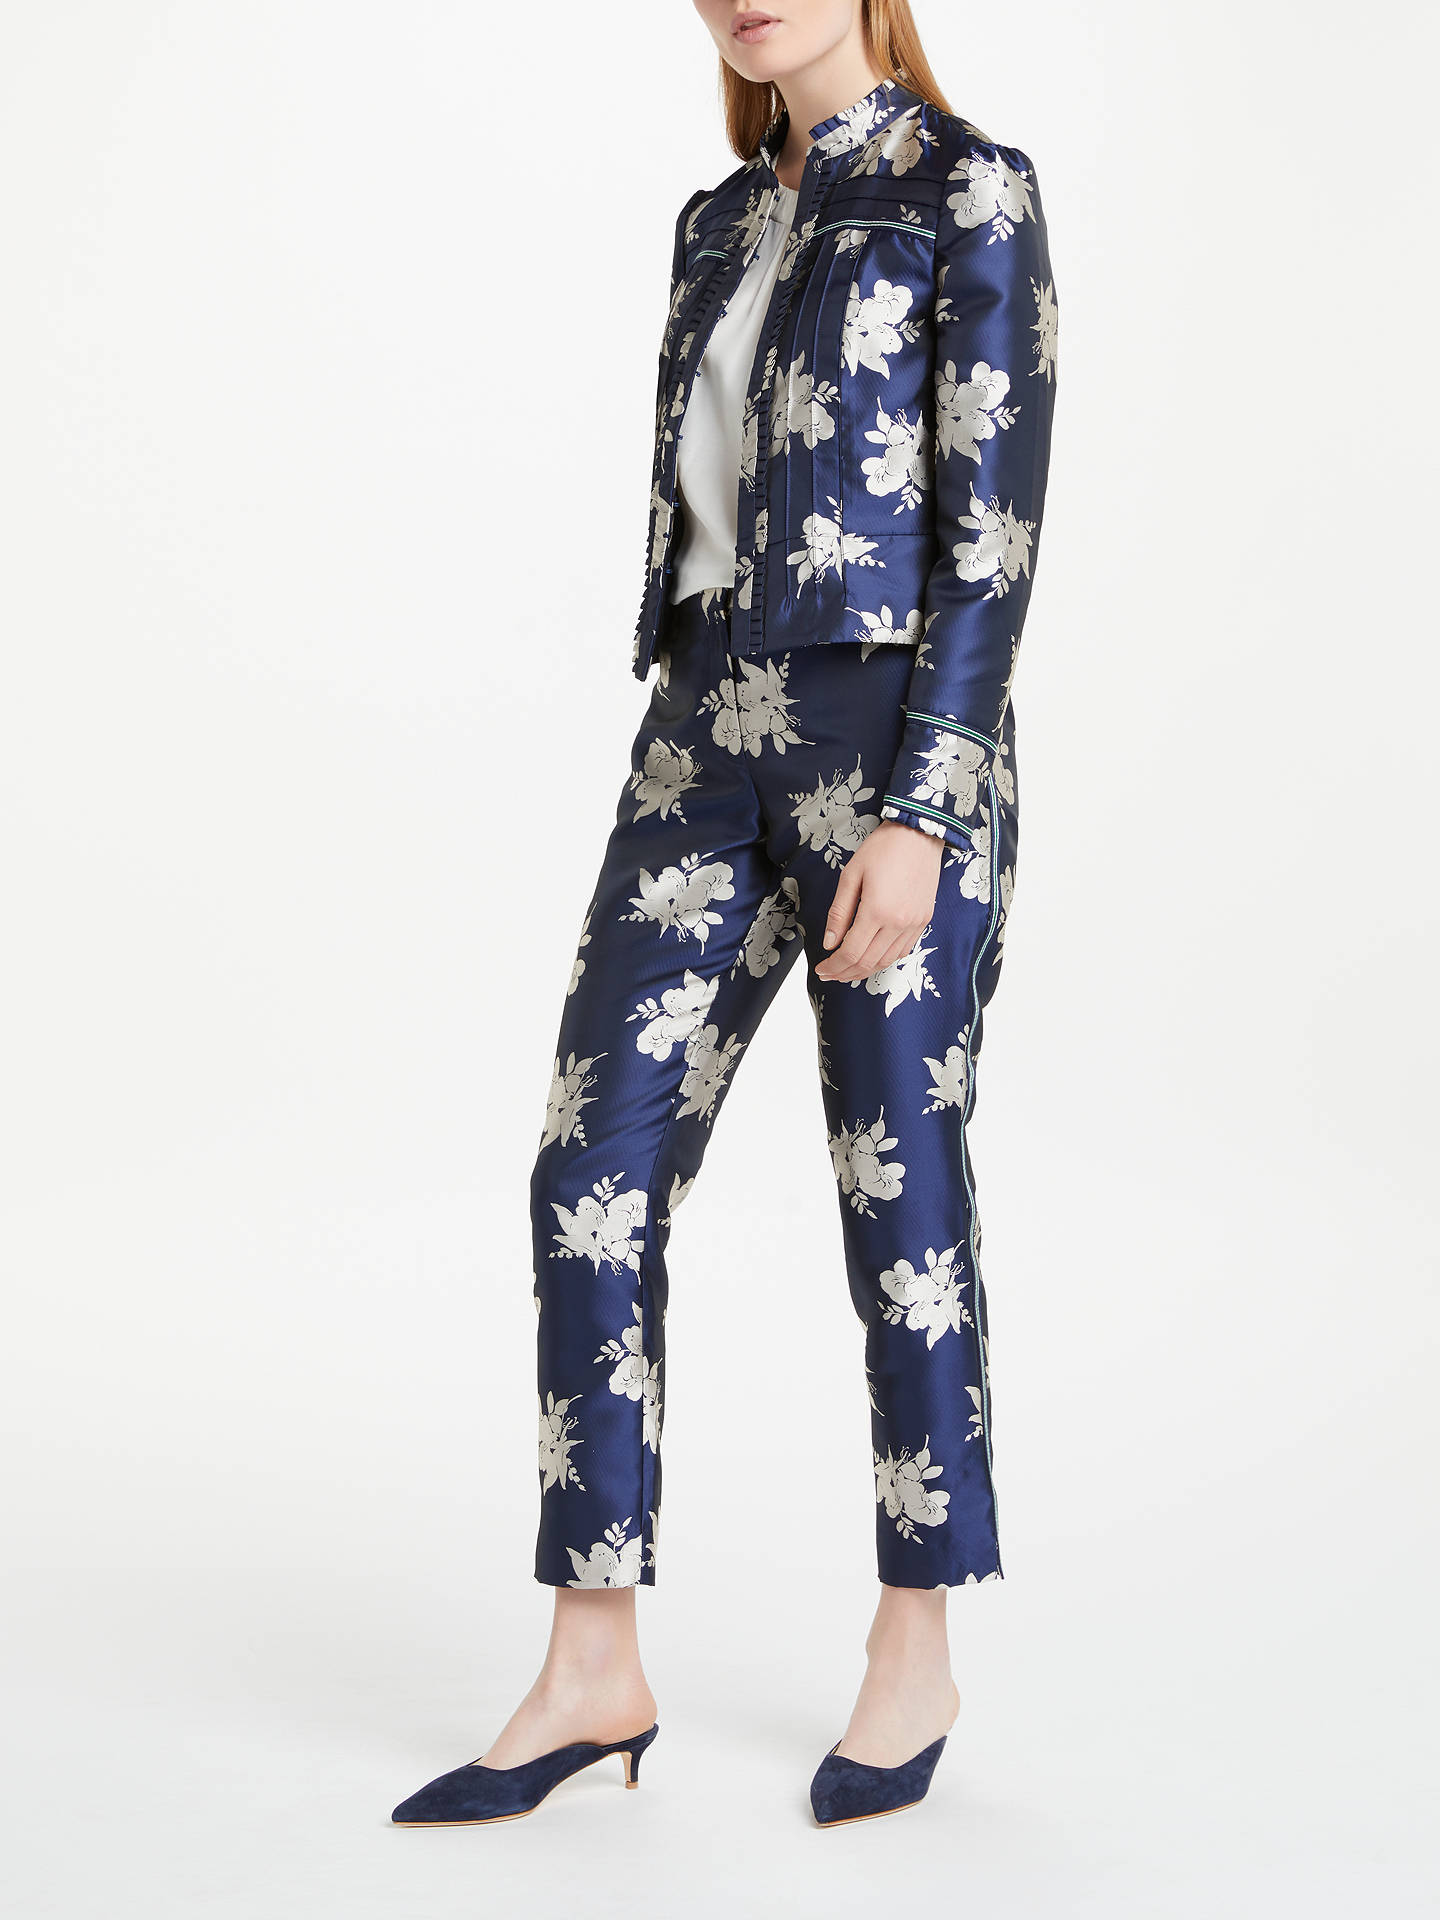 BuyBoden Mariana Jacquard Jacket, Navy Wild Bloom, 8 Online at johnlewis.com